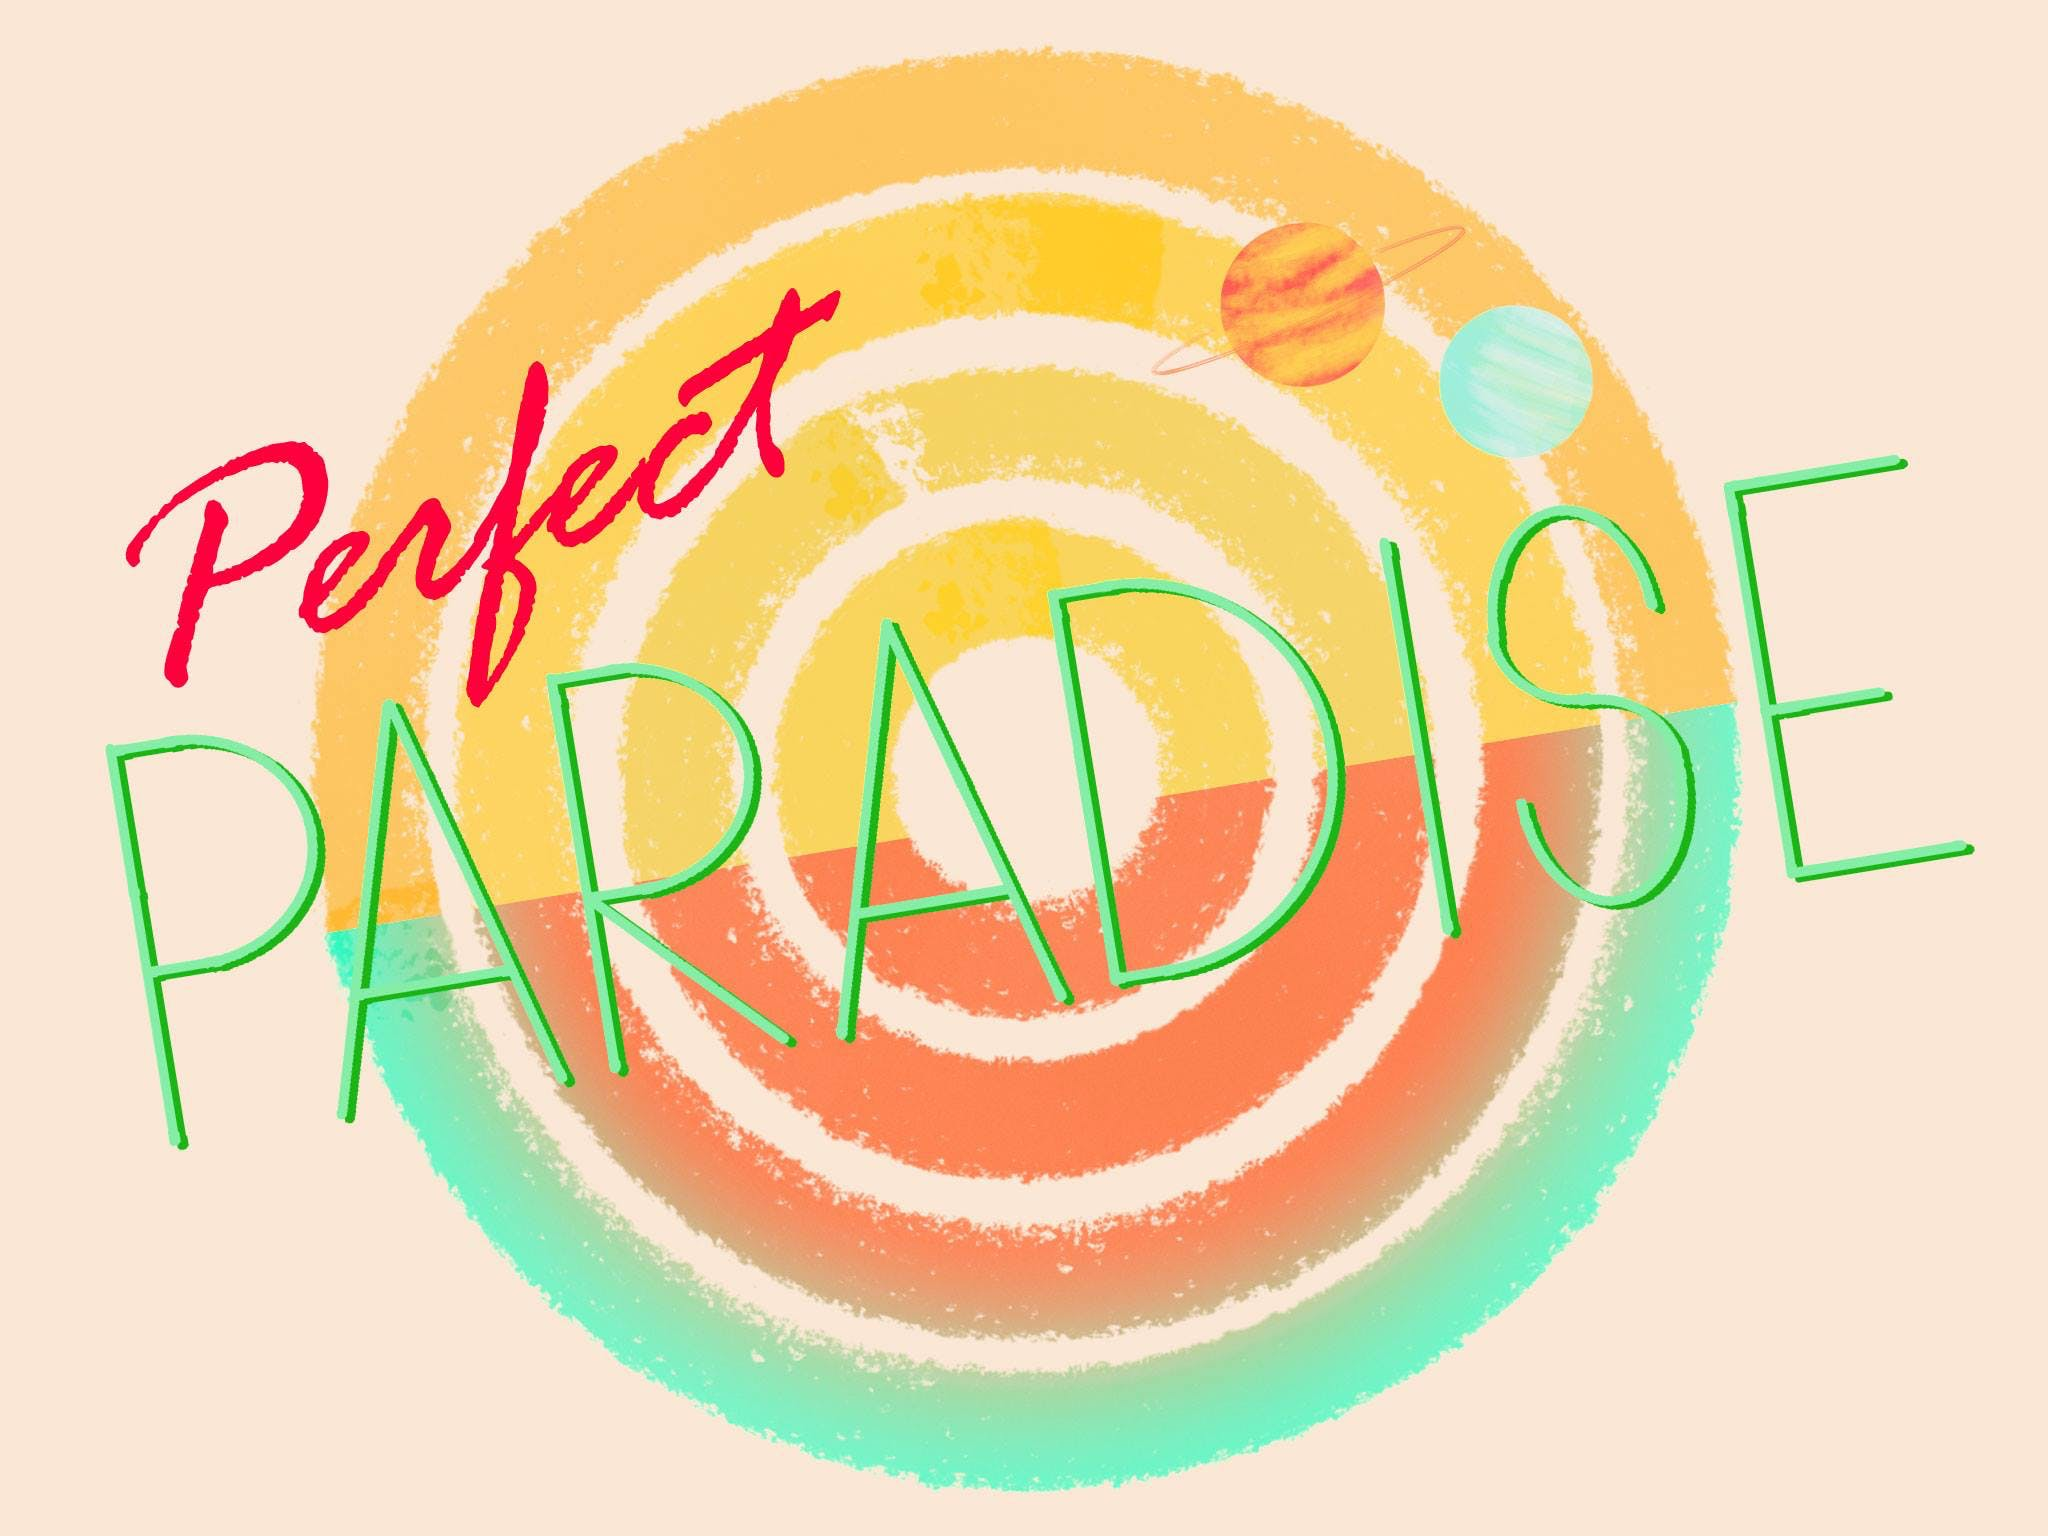 Perfect Paradise is an immersive event by Huldufugl